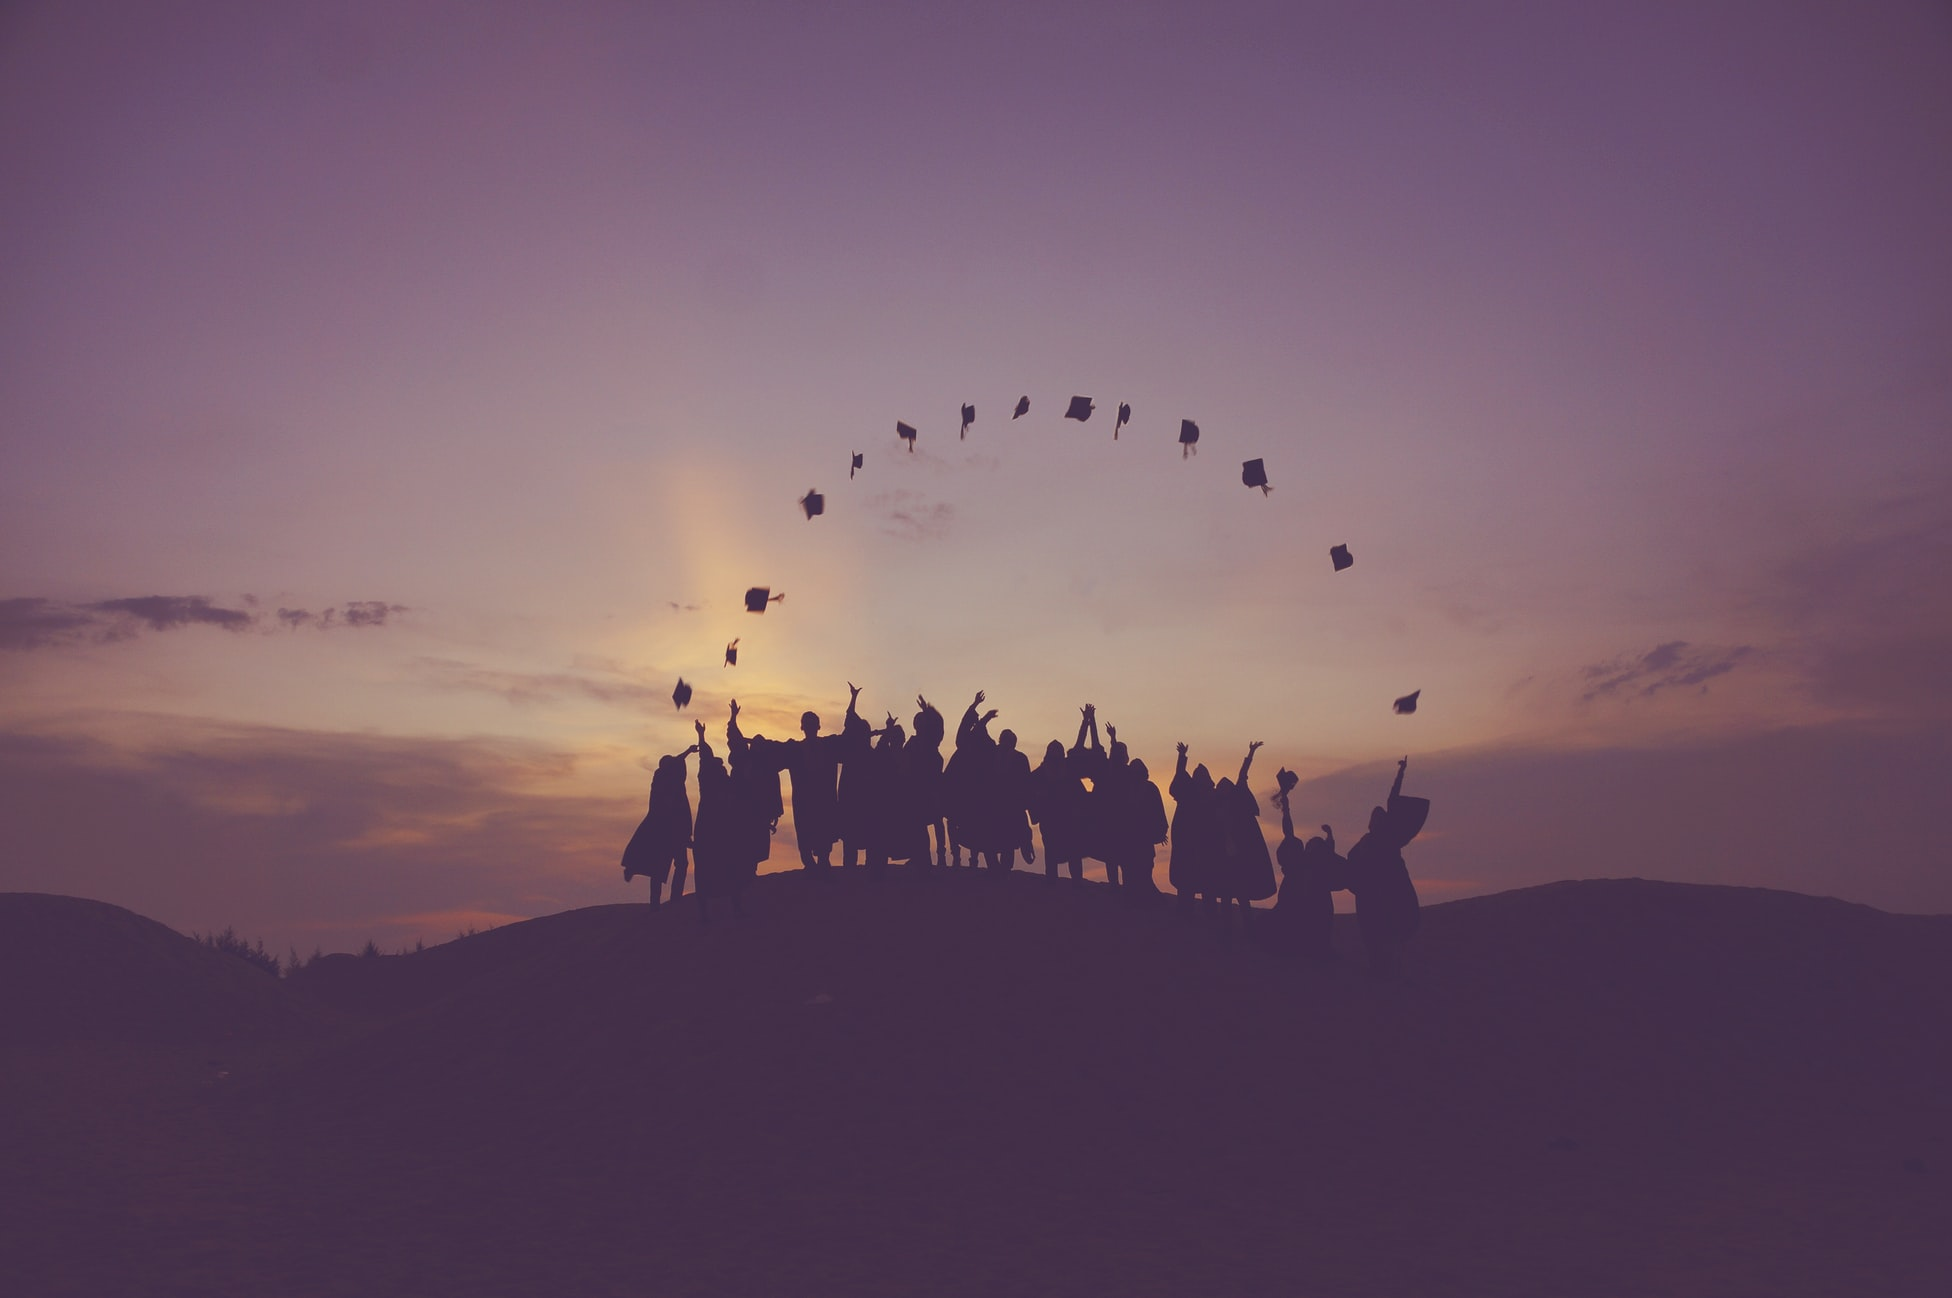 A group of graduates tossing their caps into the air